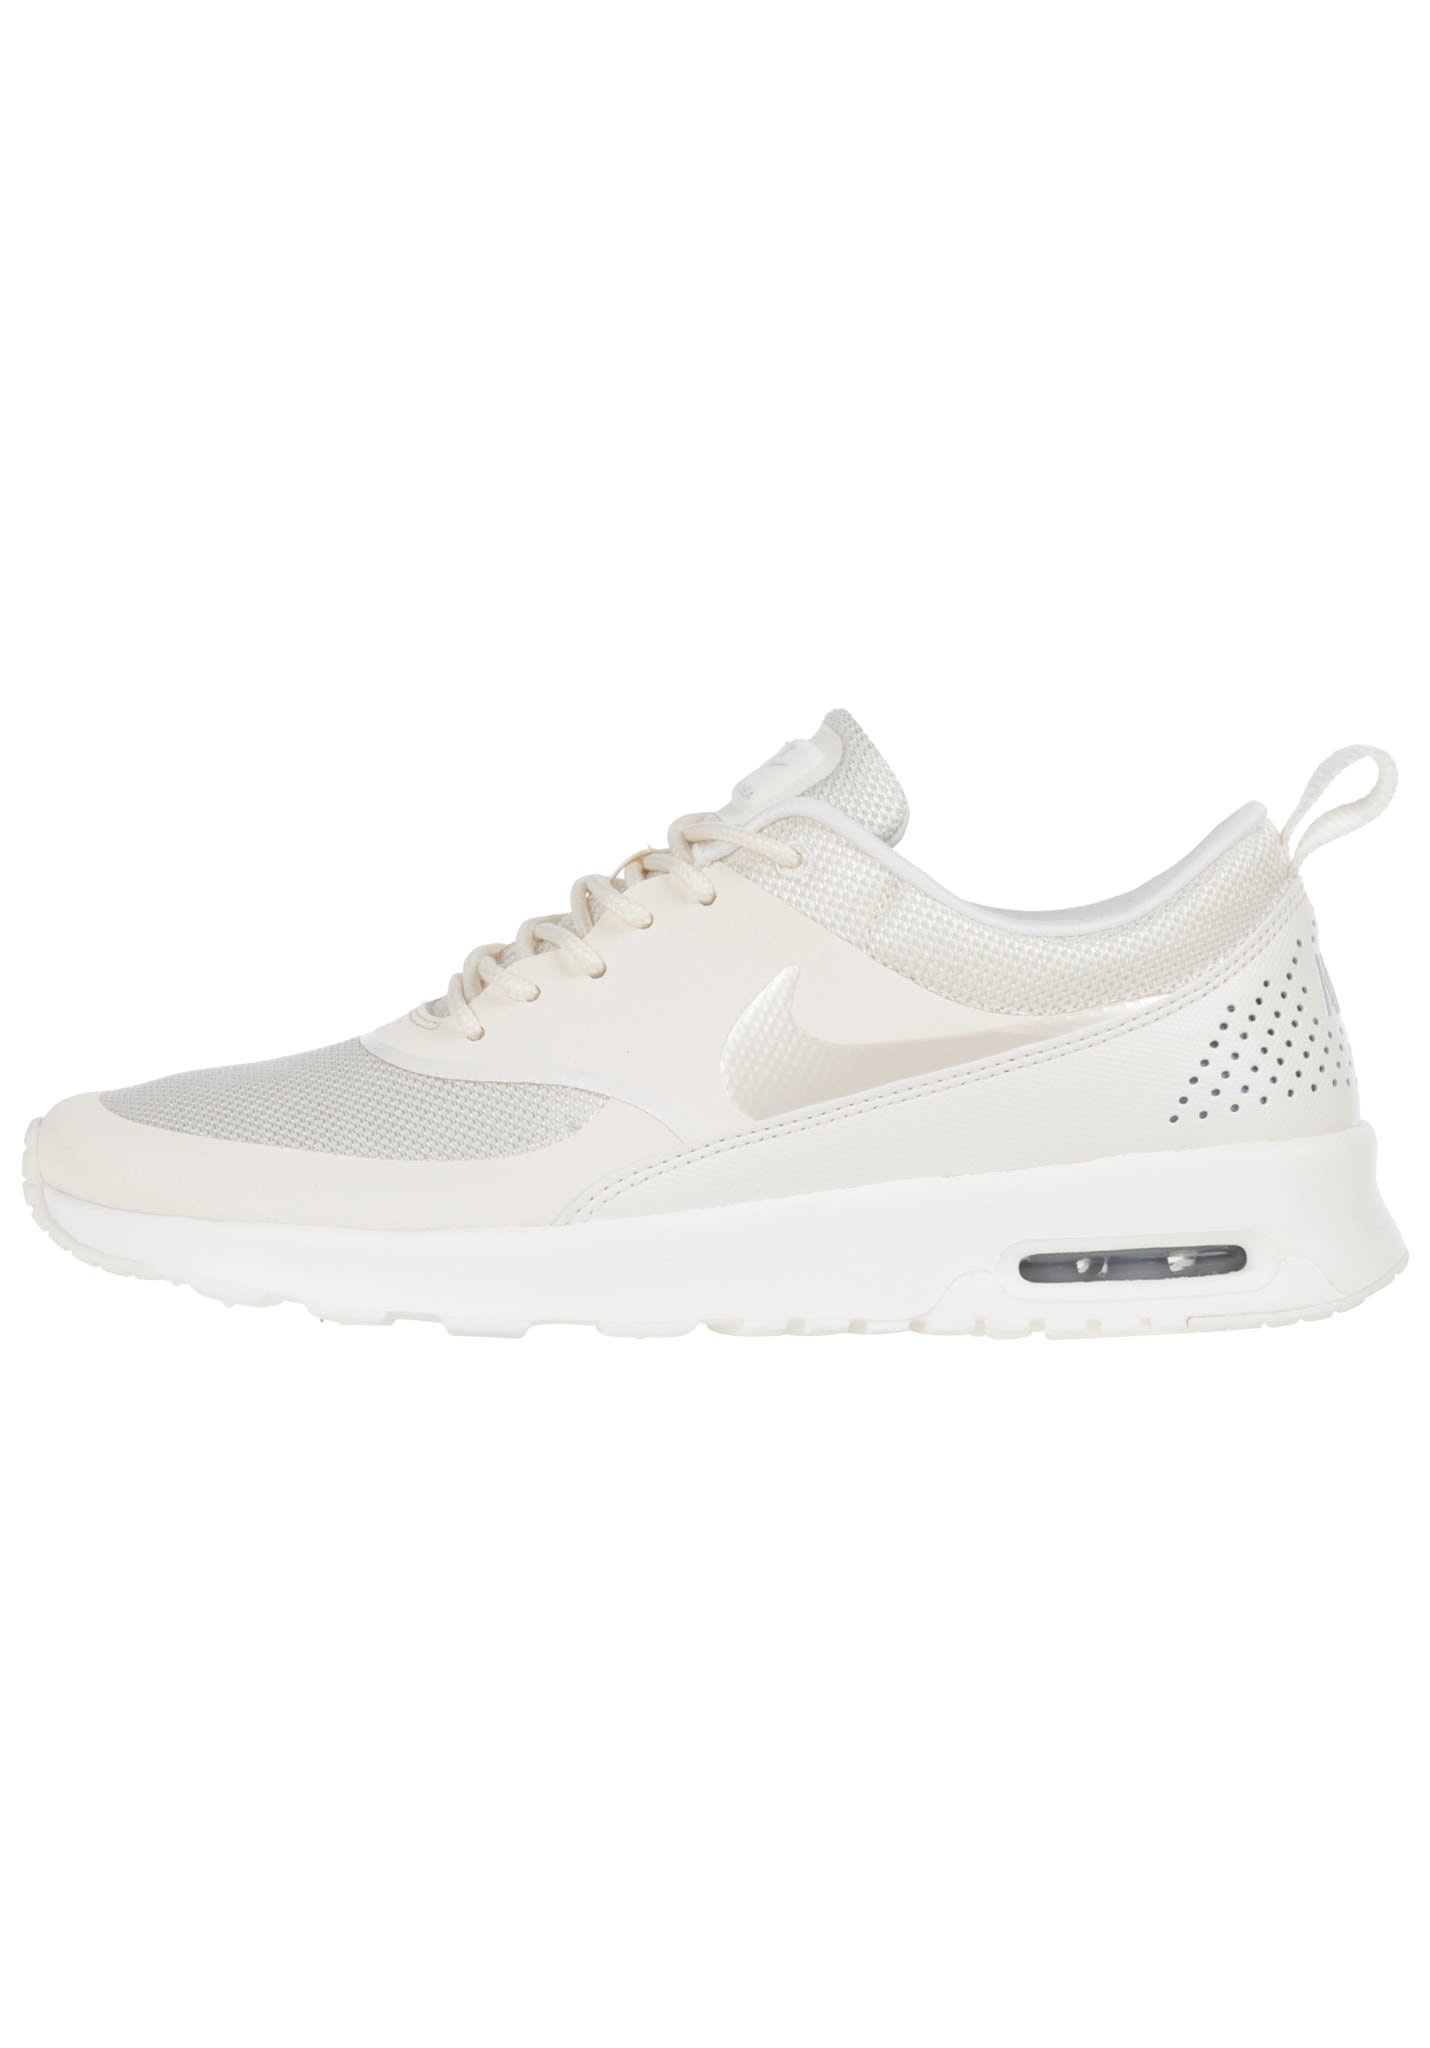 famous brand best prices limited guantity NIKE SPORTSWEAR Air Max Thea - Sneakers for Women - Beige